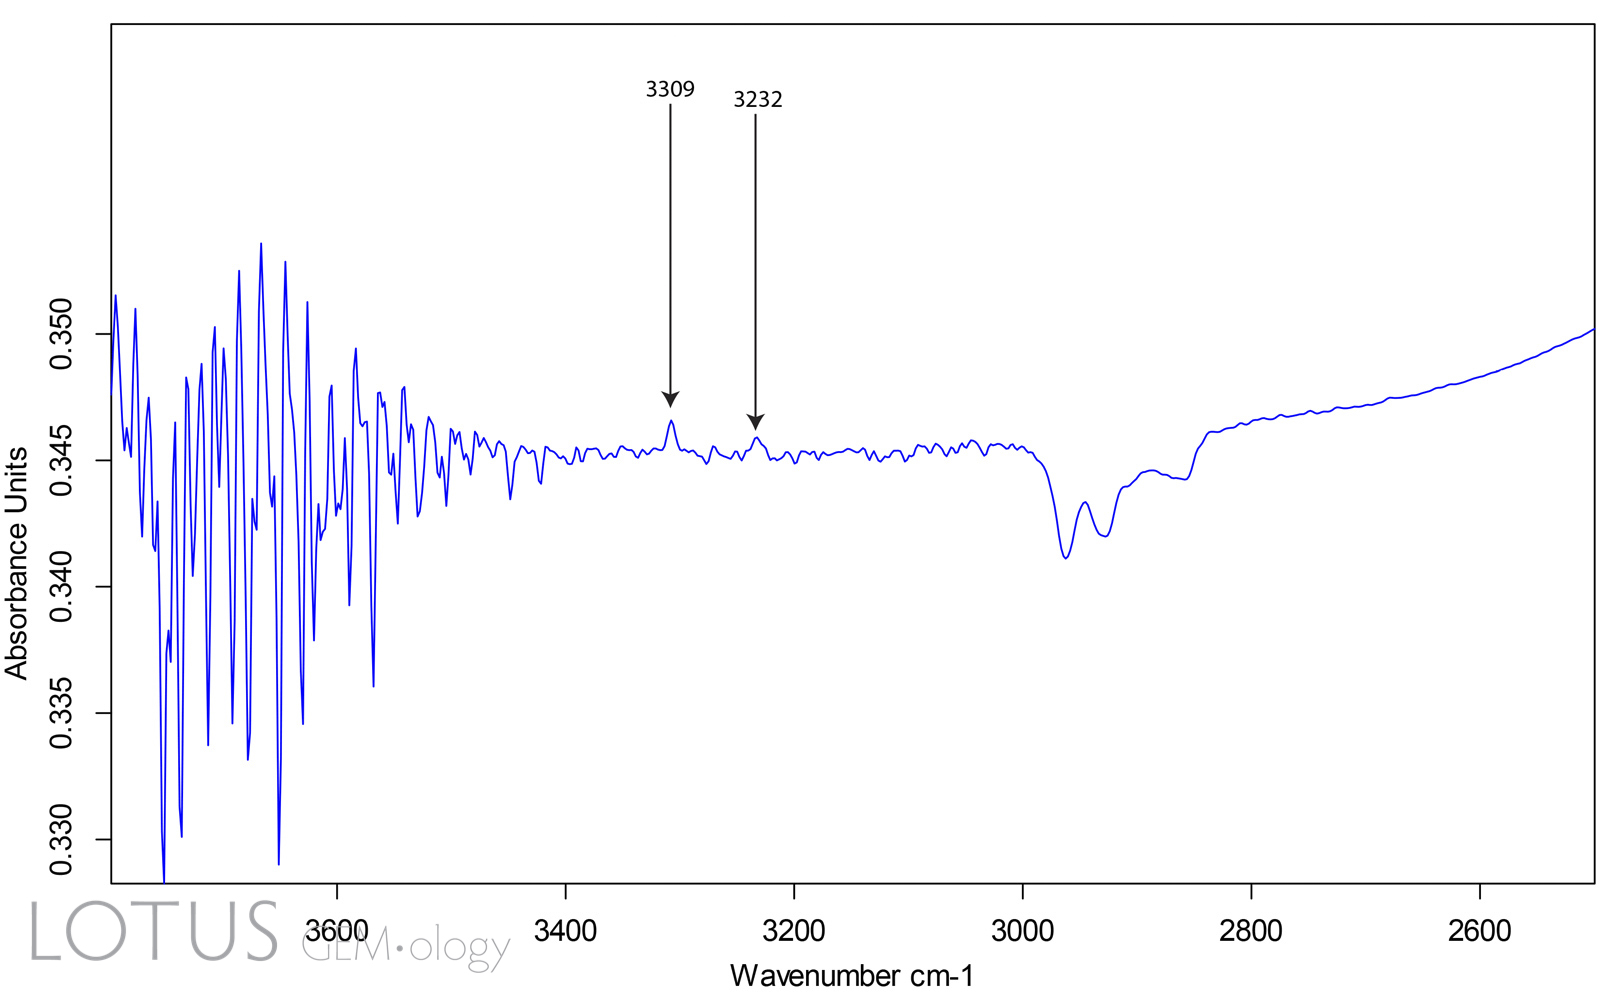 Figure 3. Infrared spectrum of the same Madagascar pink sapphire using the DRIFTS (diffuse reflectance) attachment. This bounces the beam through the gem from a variety of directions. Using this technique, the 3309 cm-1 rises well above the noise floor. In addition, the peak at 3232 cm-1 rises above the noise floor, proving that the gem was subjected to artificial heat treatment.